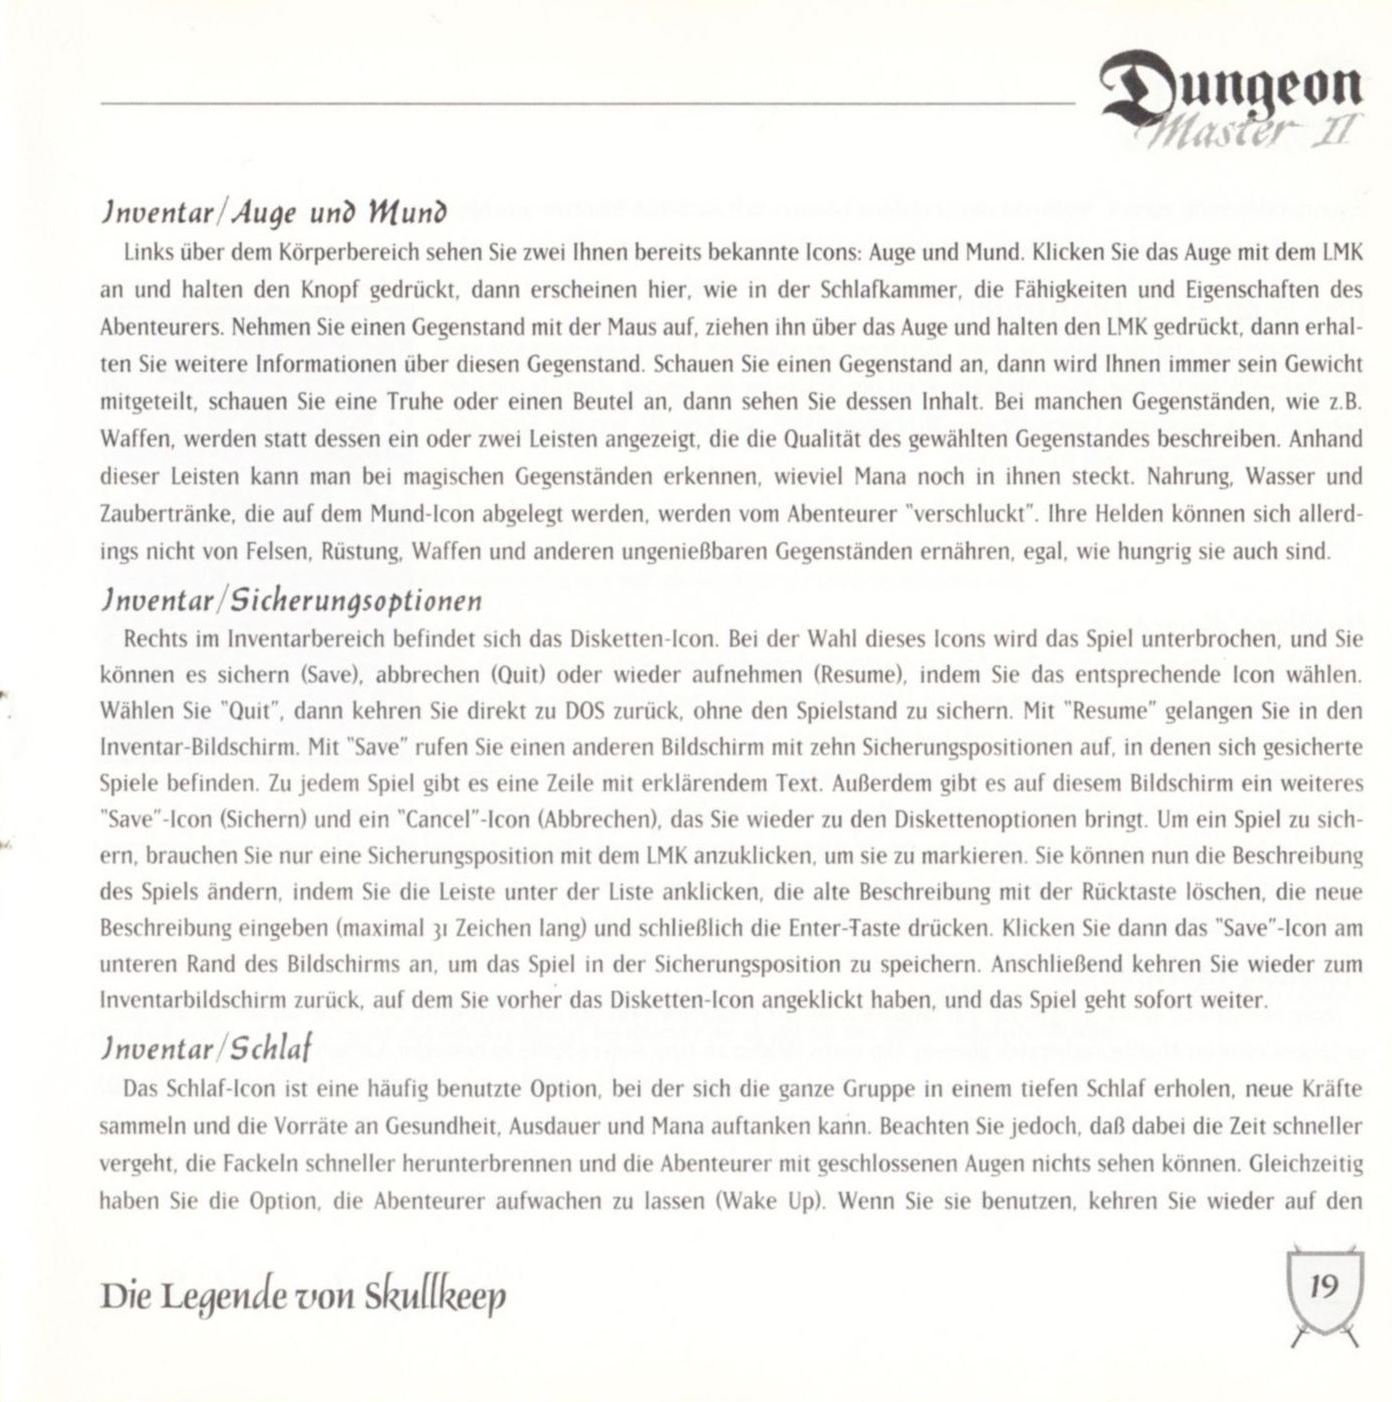 Game - Dungeon Master II - DE - PC - Blackmarket With Booklet - Booklet - Page 021 - Scan